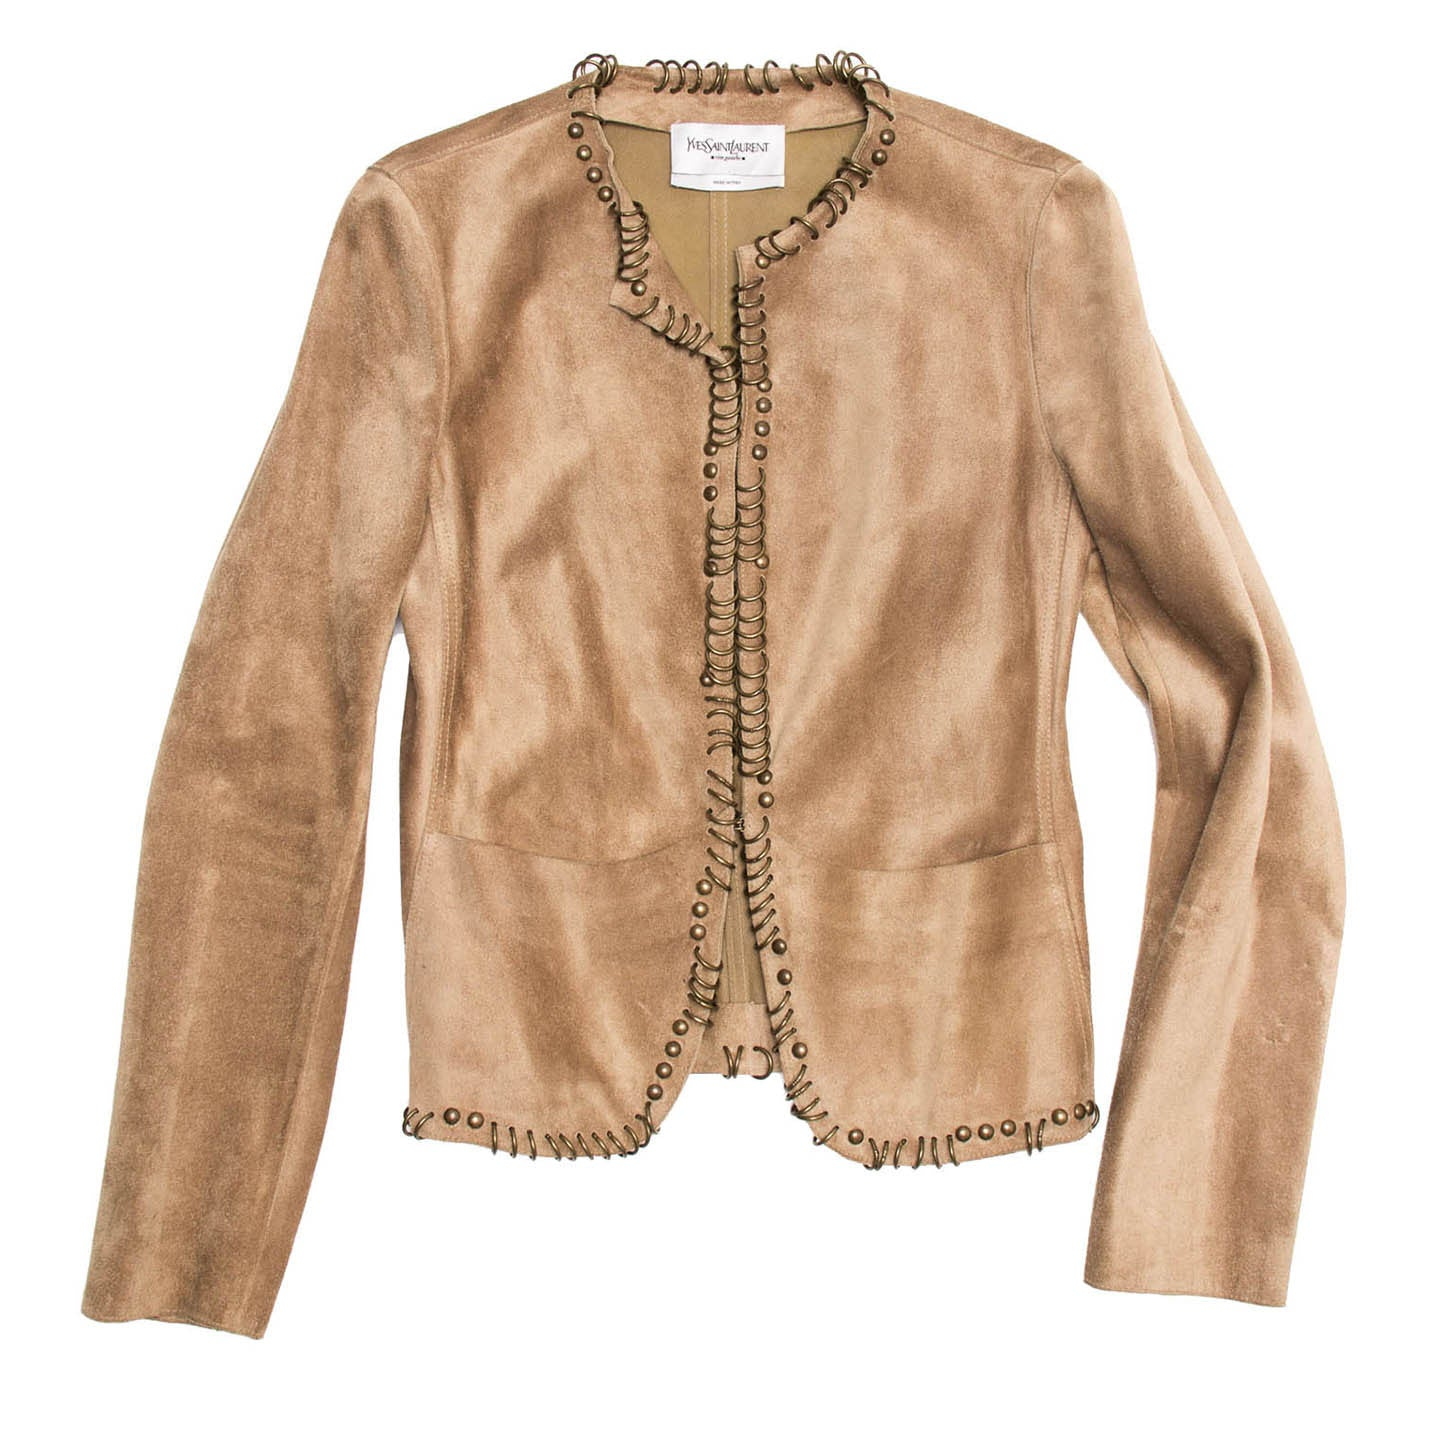 YSL Tan Suede Jacket With Rings, Size 42 (French)